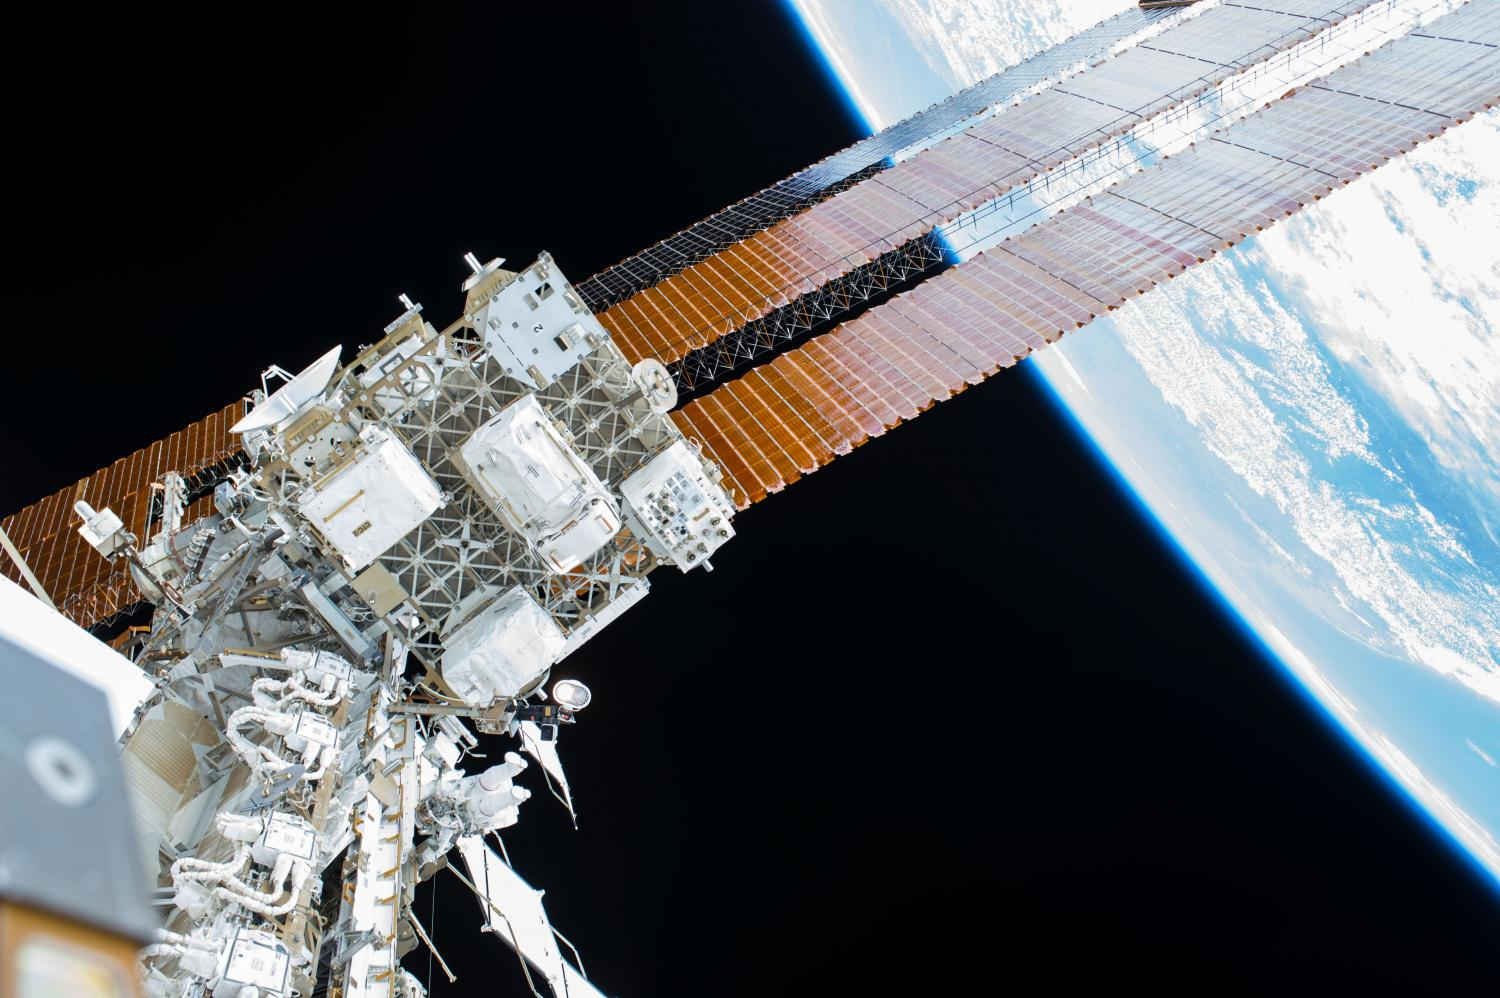 nasa iss robot new - photo #24